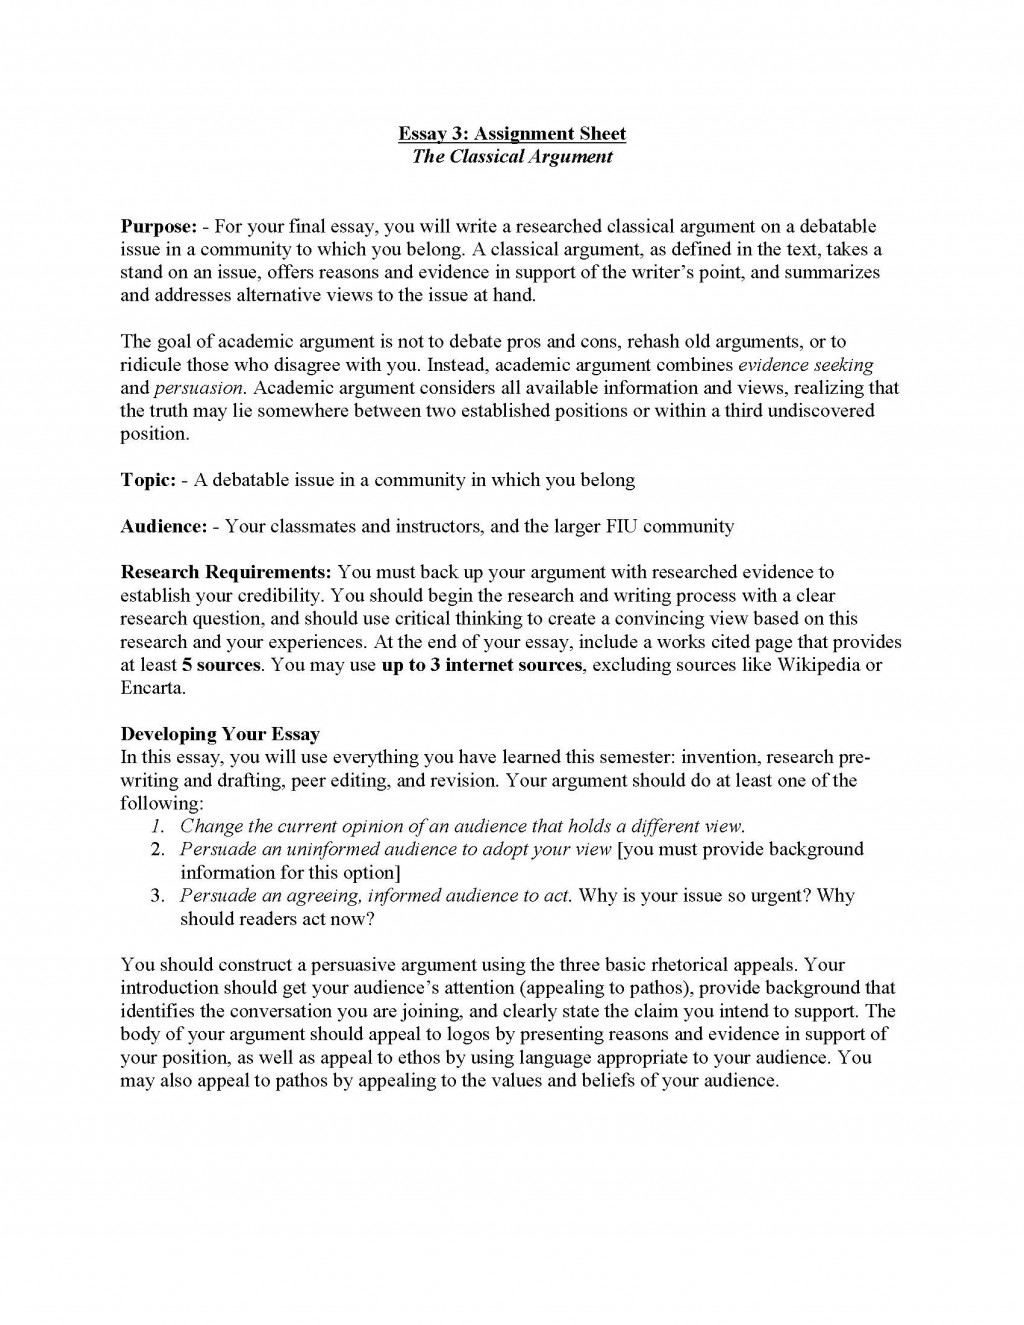 017 Classical Argument Unit Assignment Page 1 Essay Example Best Rogerian Structure Topics 2017 Gun Control Large